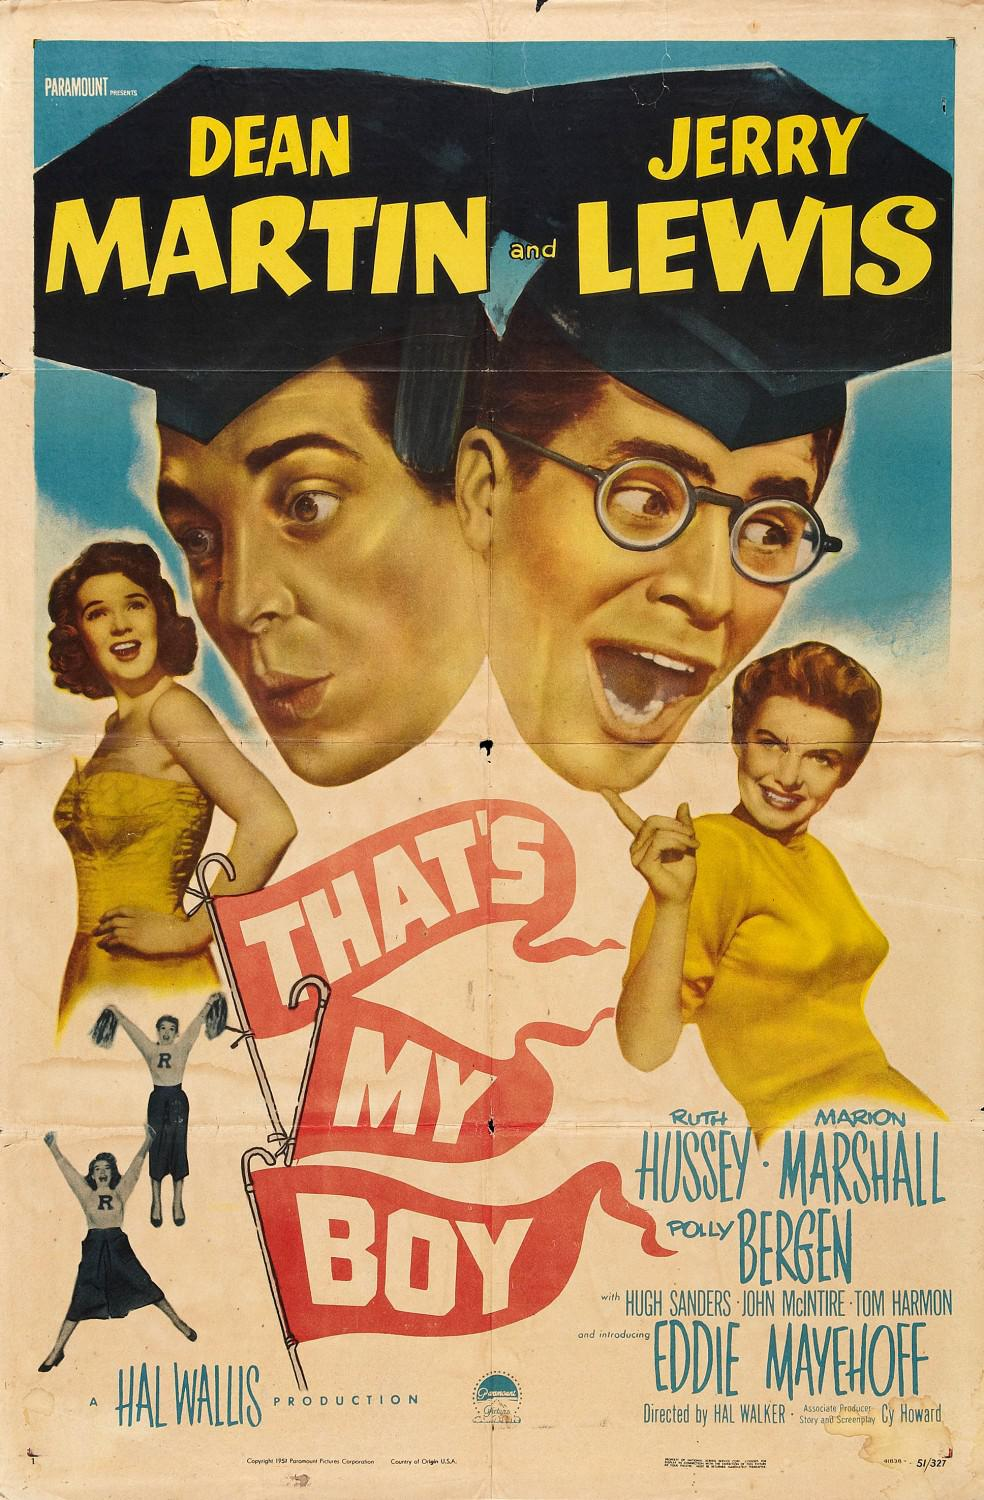 Thats my Boy - Dean Martin - Jerry Lewis - old poster